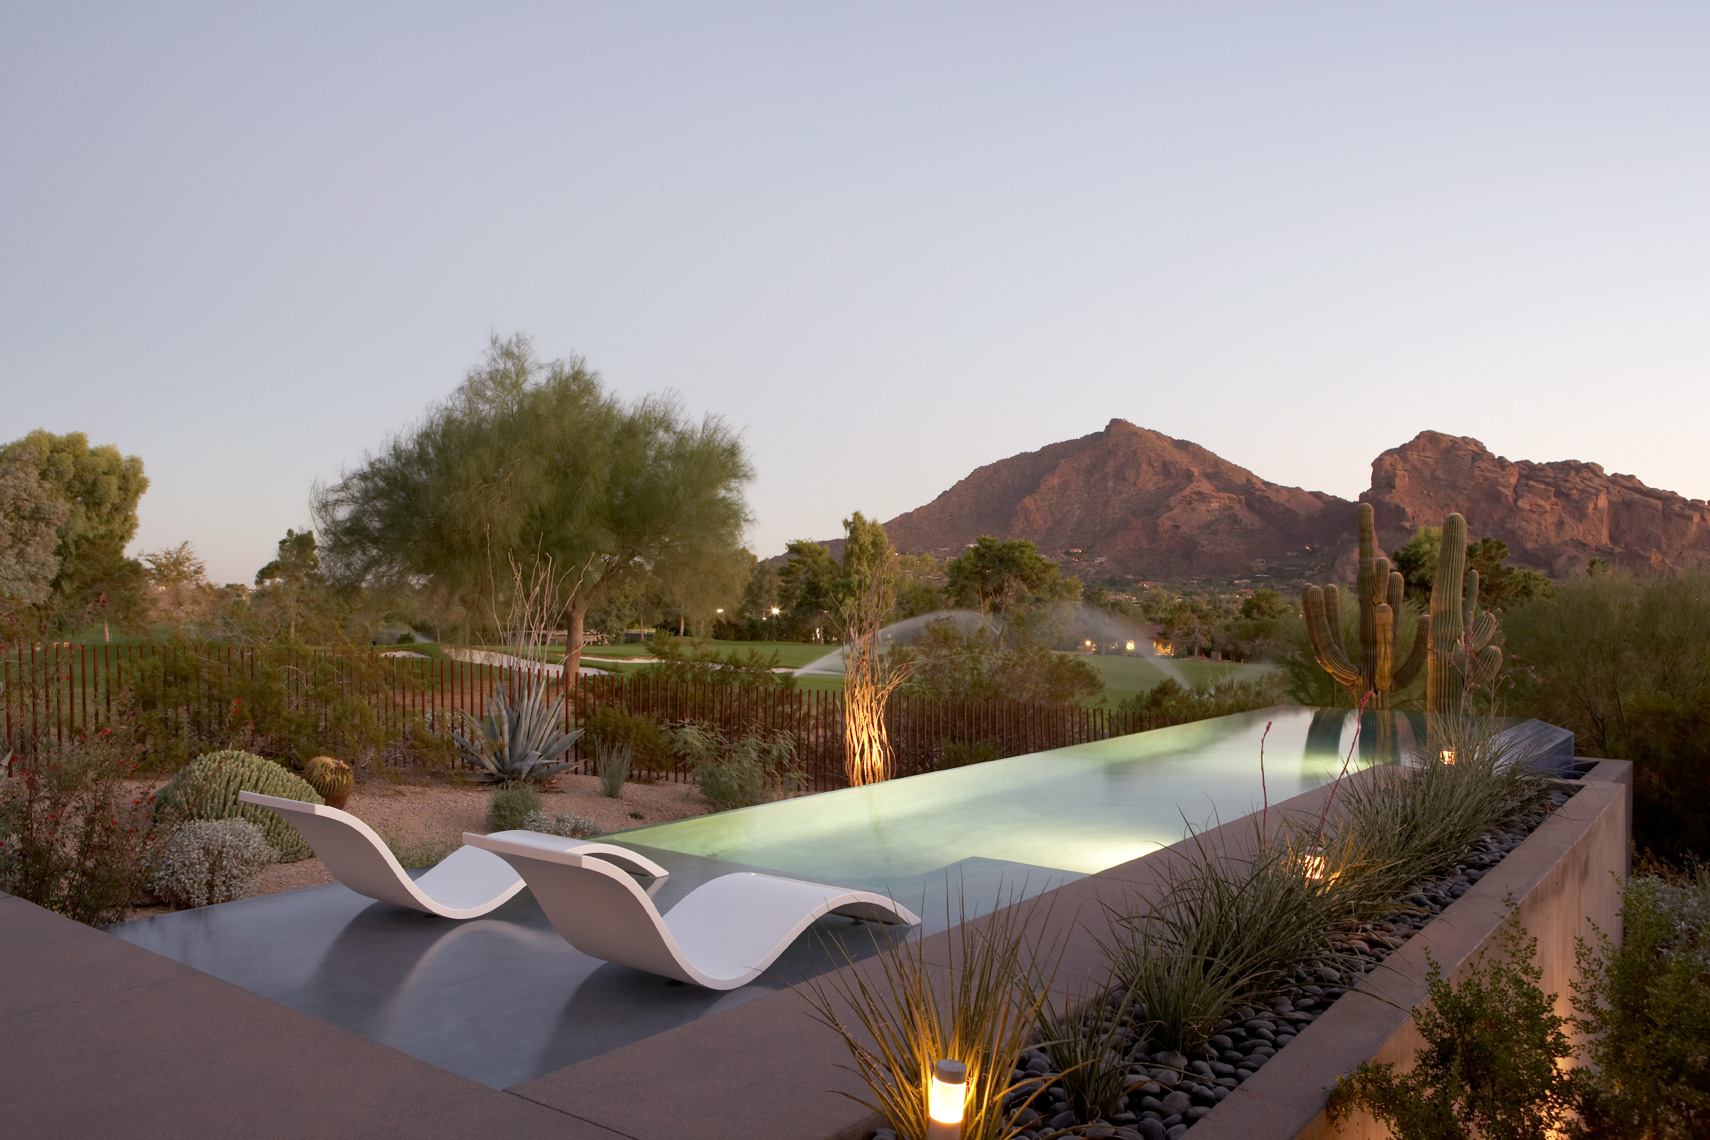 White modern chairs in blue pool at dusk in the desert with mountains behind San Francisco architectural photographer